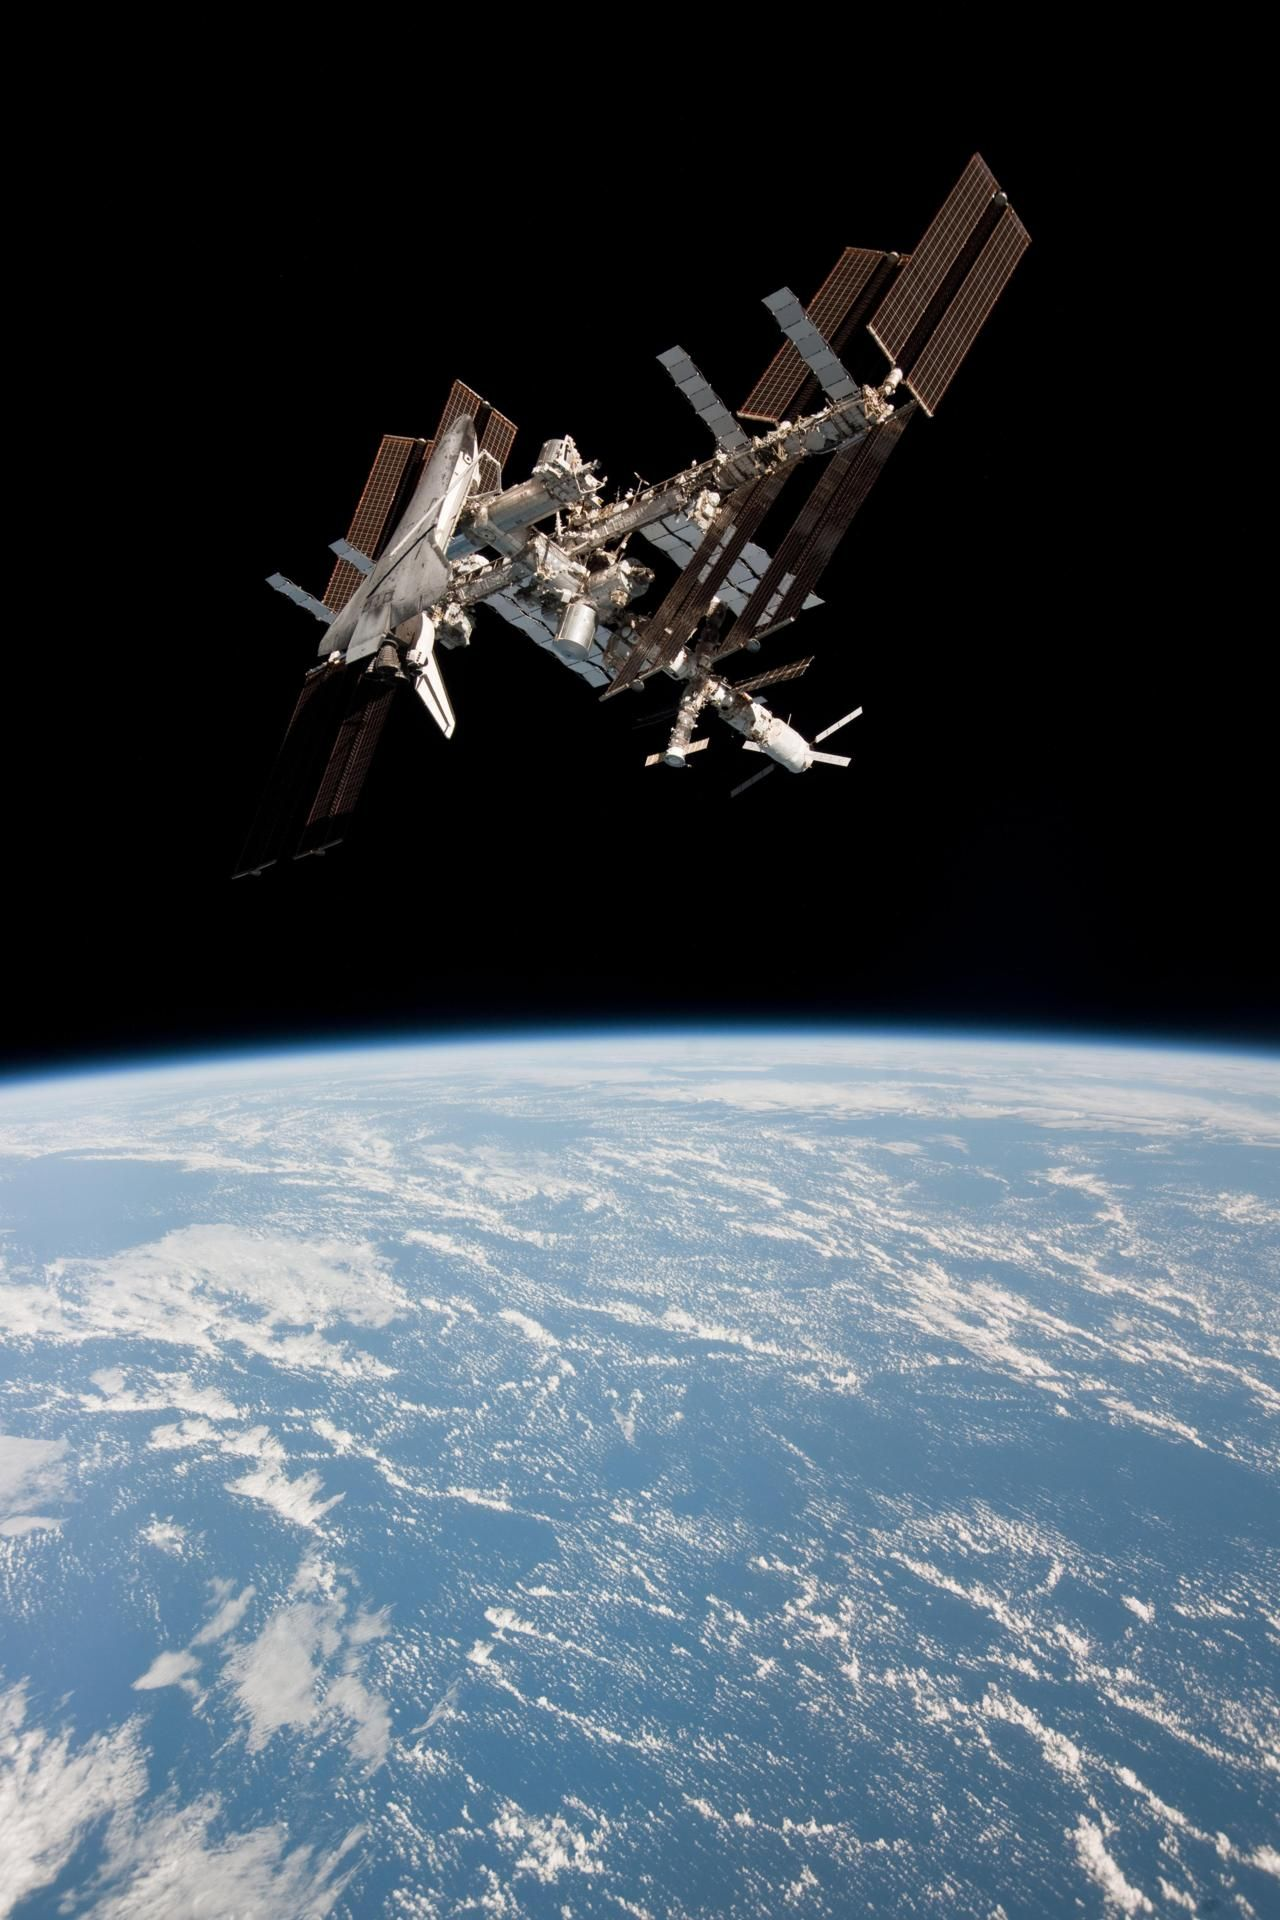 ISS International Space Station and The Space Shuttle